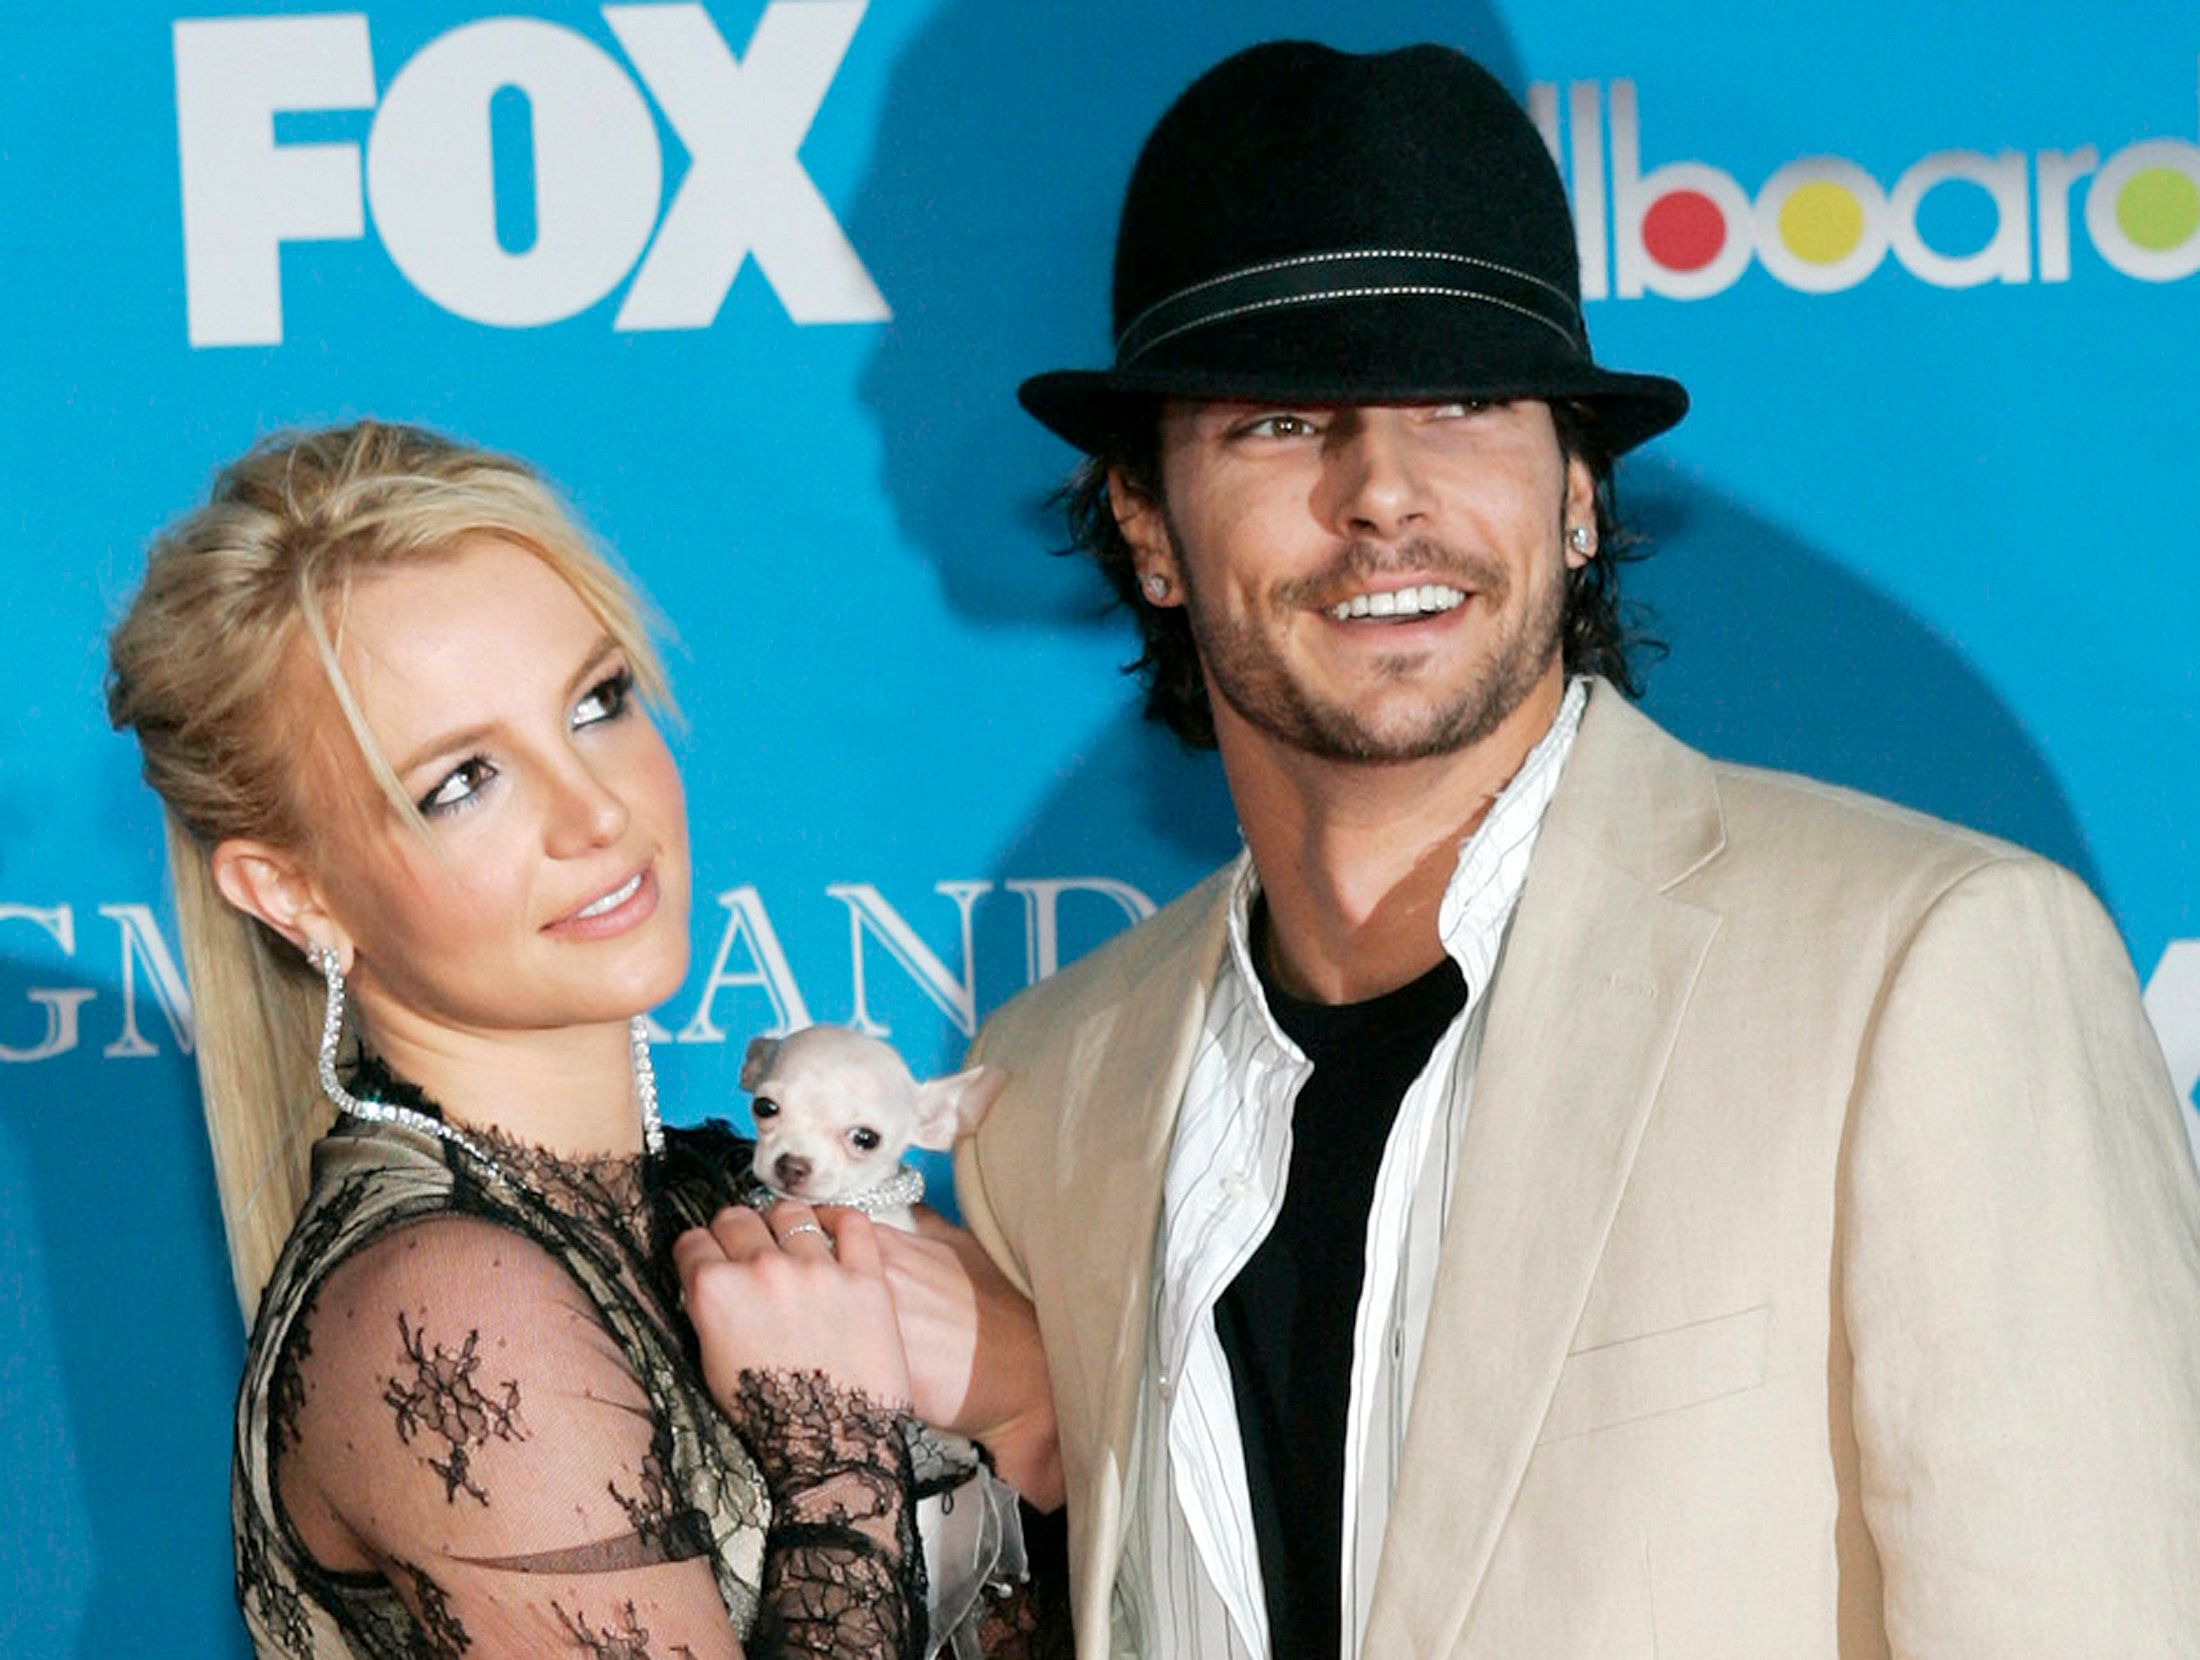 Britney Spears Ordered To Pay Kevin Federline Over $100,000 In Child Support